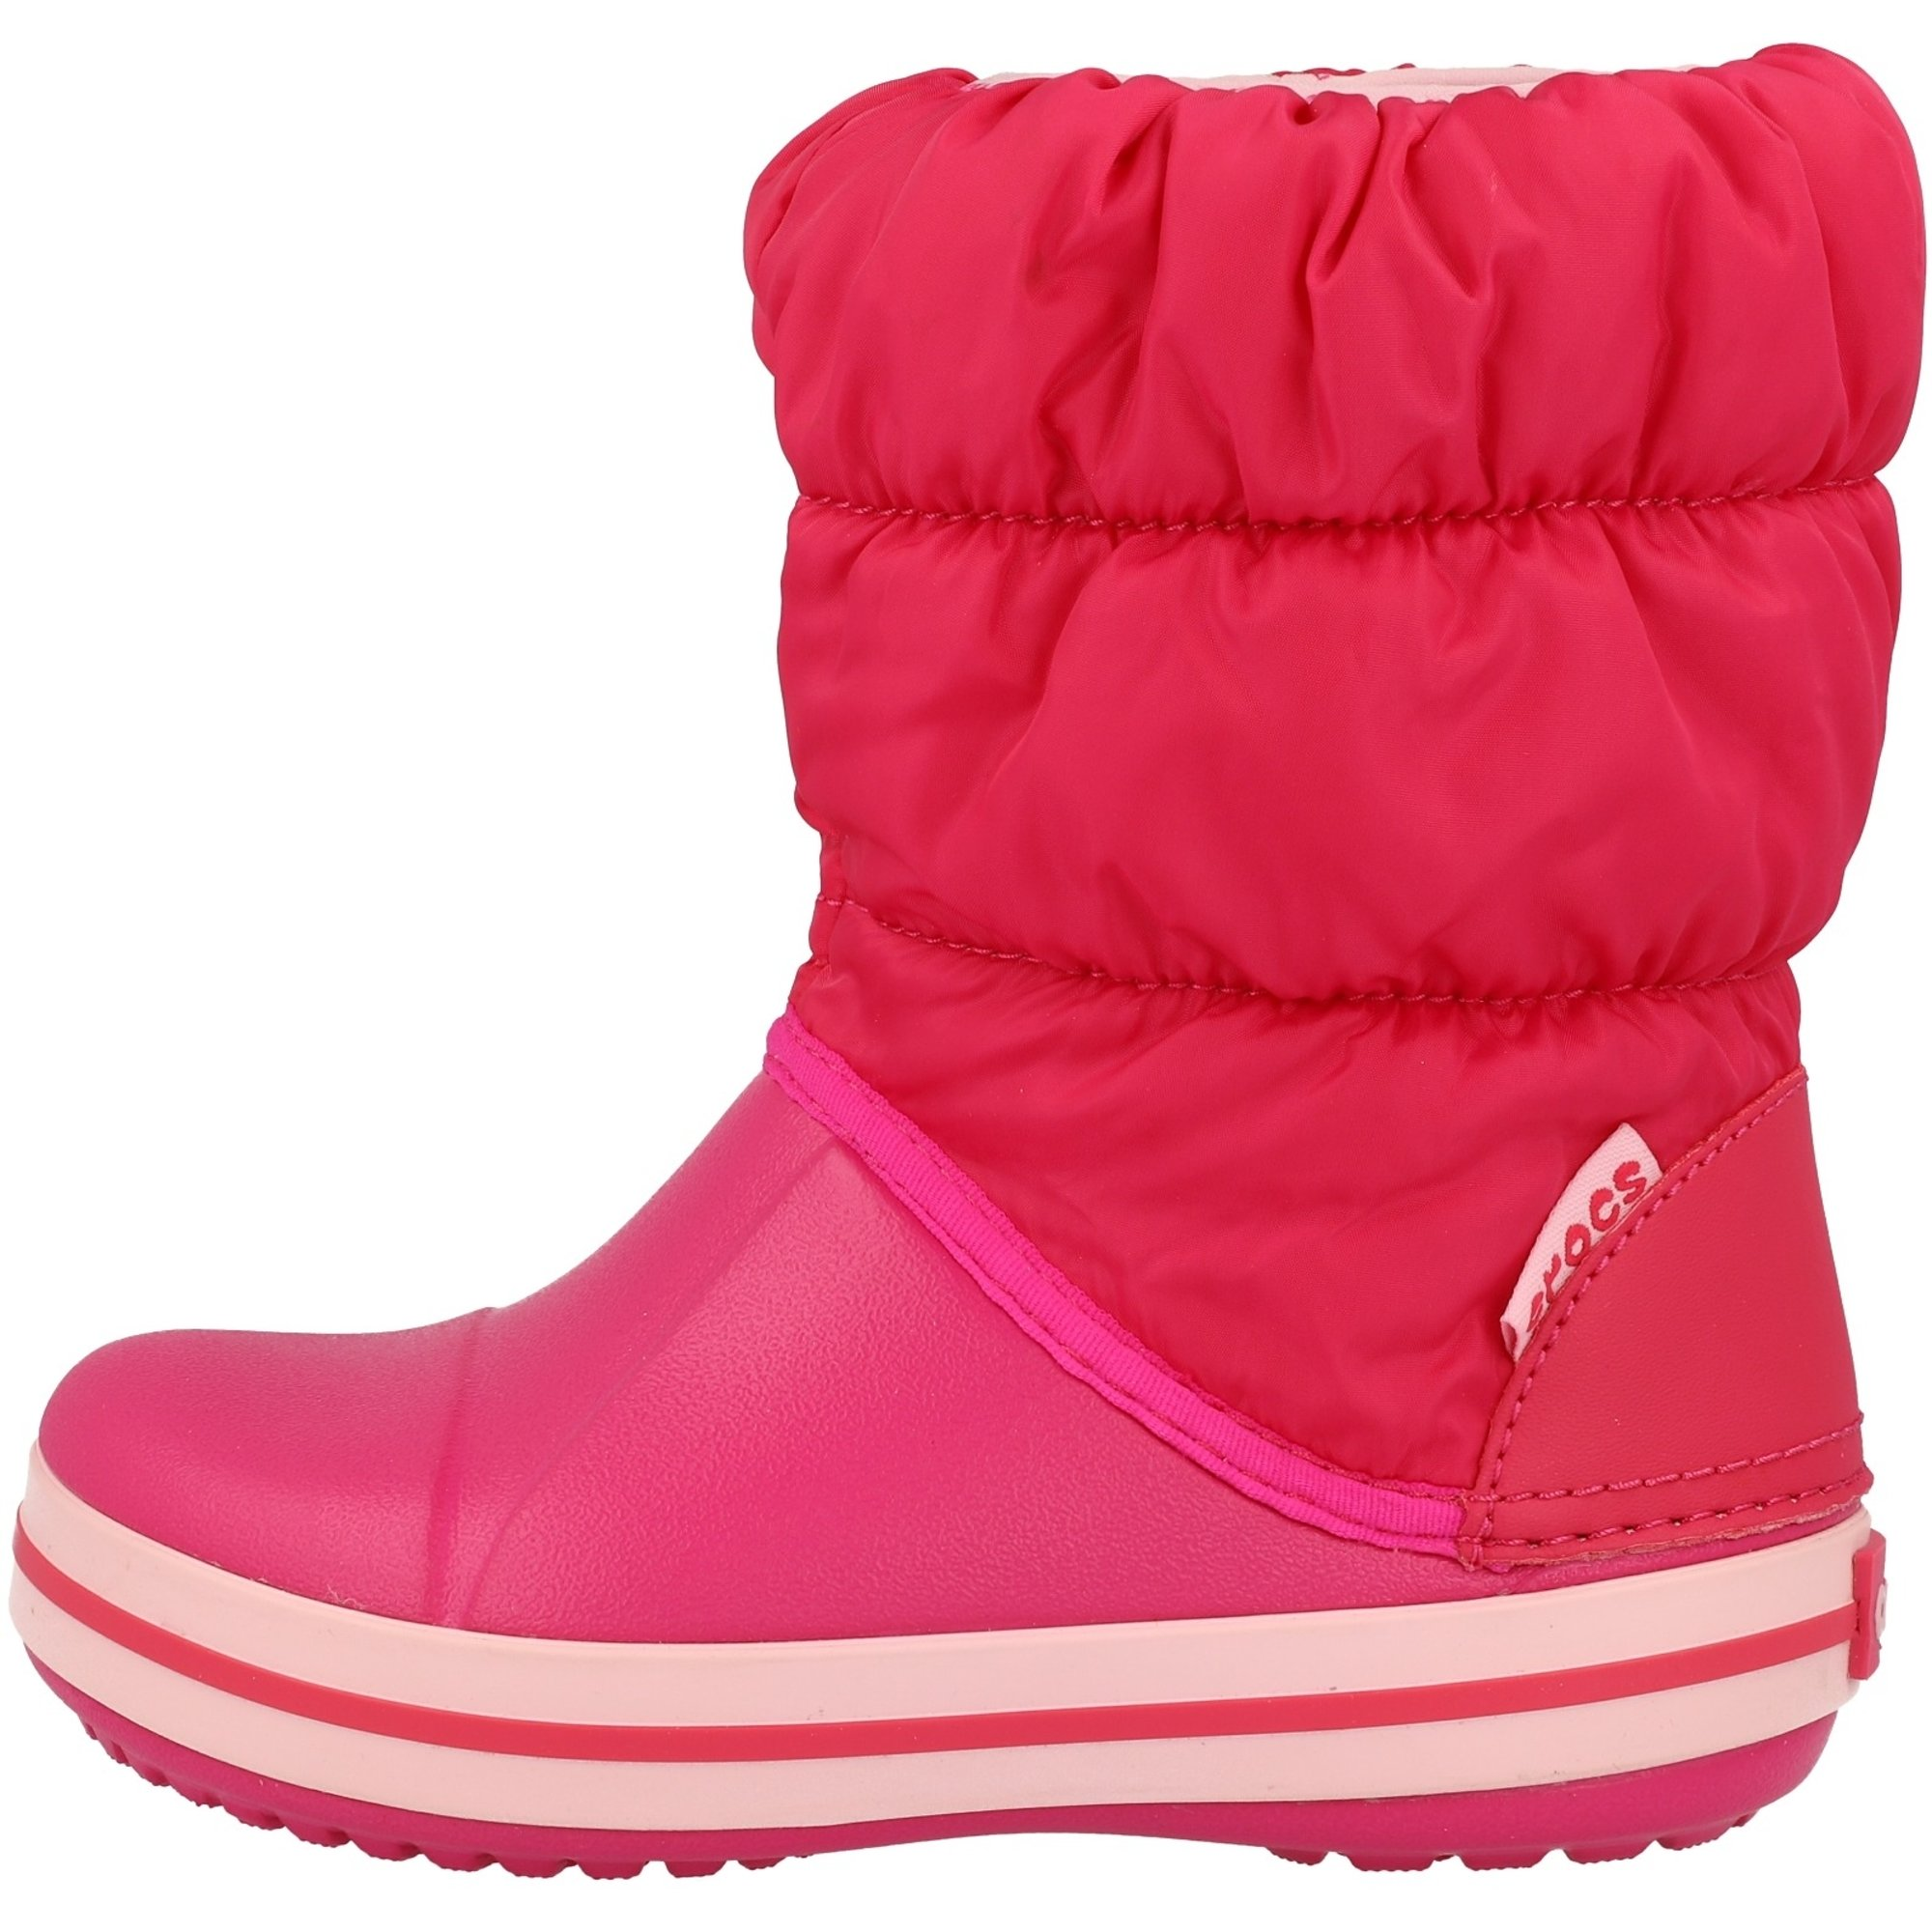 Crocs Kids Winter Puff Boot Candy Pink Nylon Infant